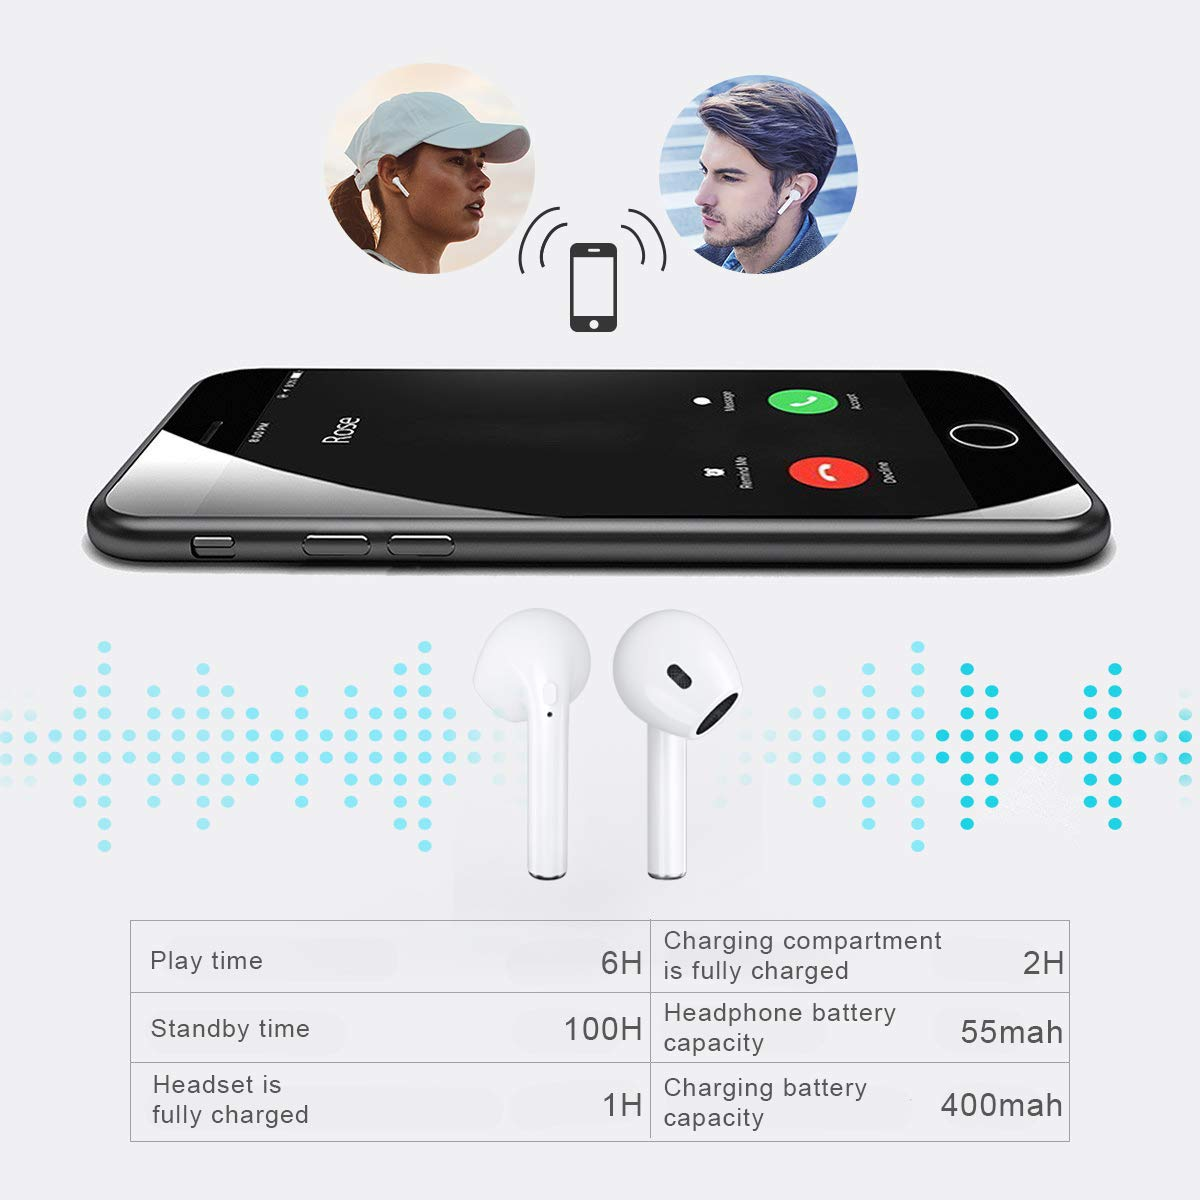 ZBC Wireless Earbuds I9 Bluetooth Earphones V5.0 Headphones in-Ear TWS Headsets Auto-Pair Airpods Mic Charging Case Sport Running Mini True Stereo Sound Noise Reduction Compatible iOS Android Samsung by ZBC (Image #7)